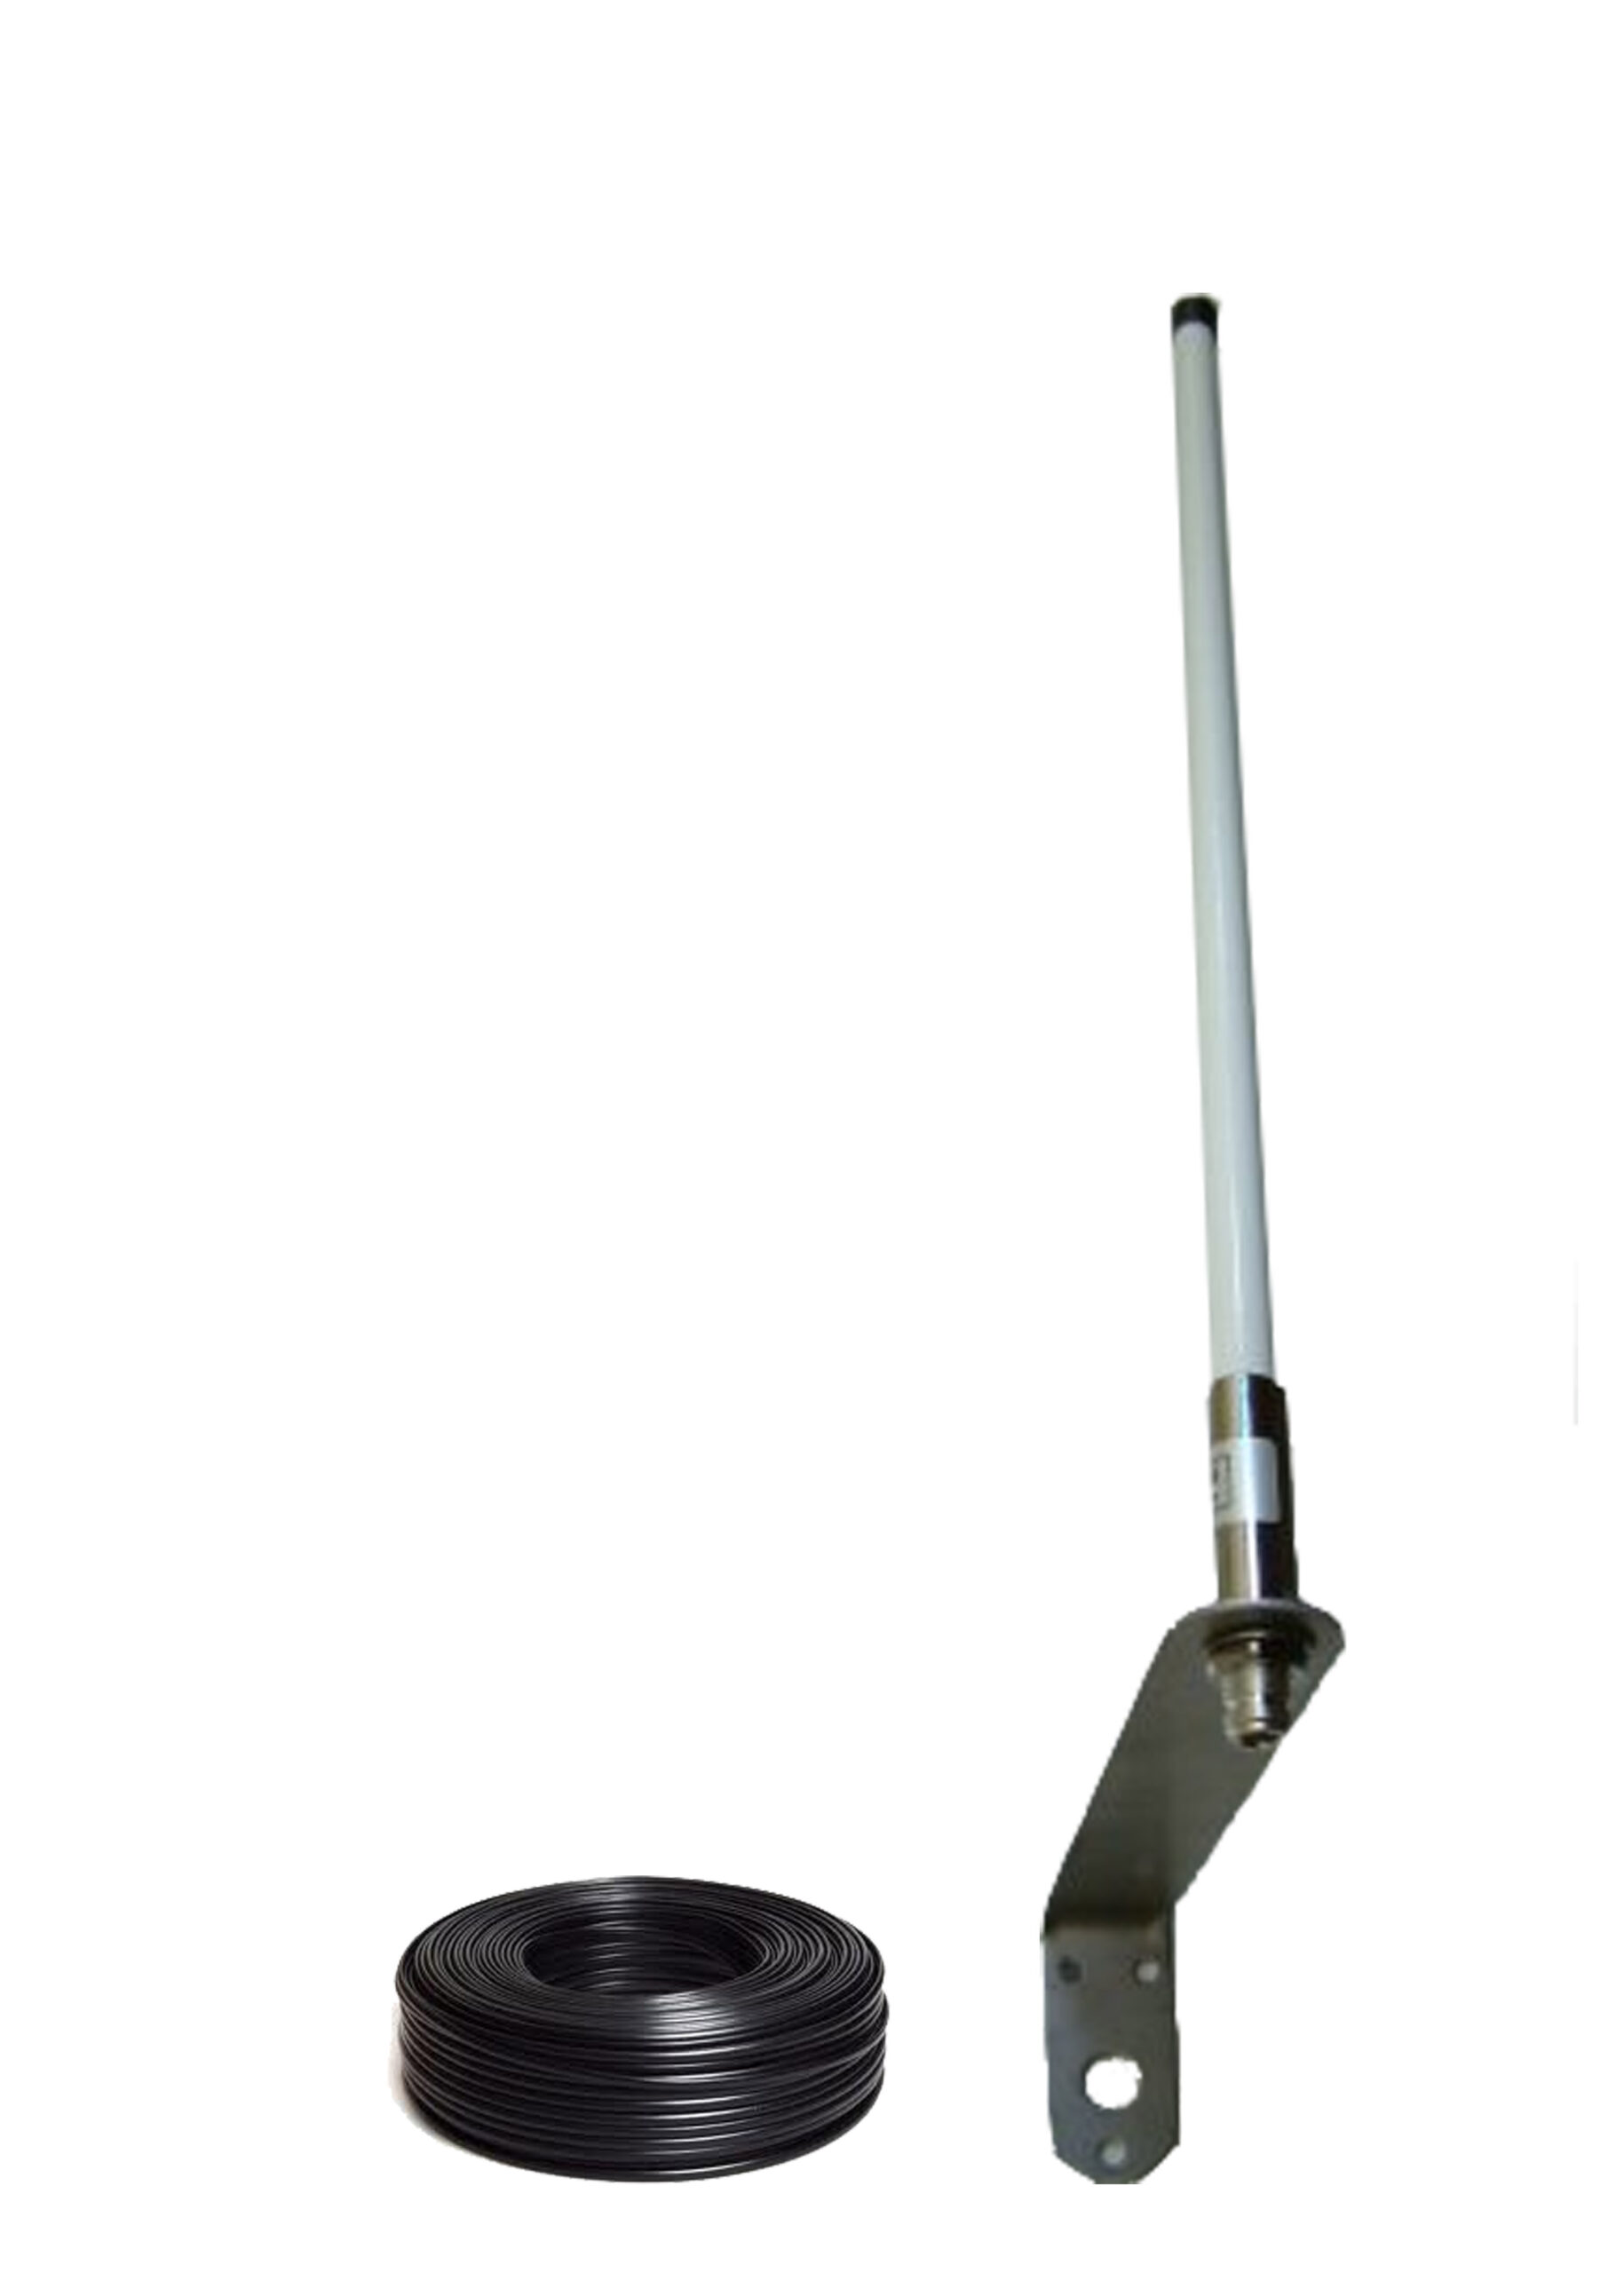 5dB omni antenna 25m cable - 2G / 3G / LoRa / Sigfox | 2G antennes, 3G antennes | Product | MCS